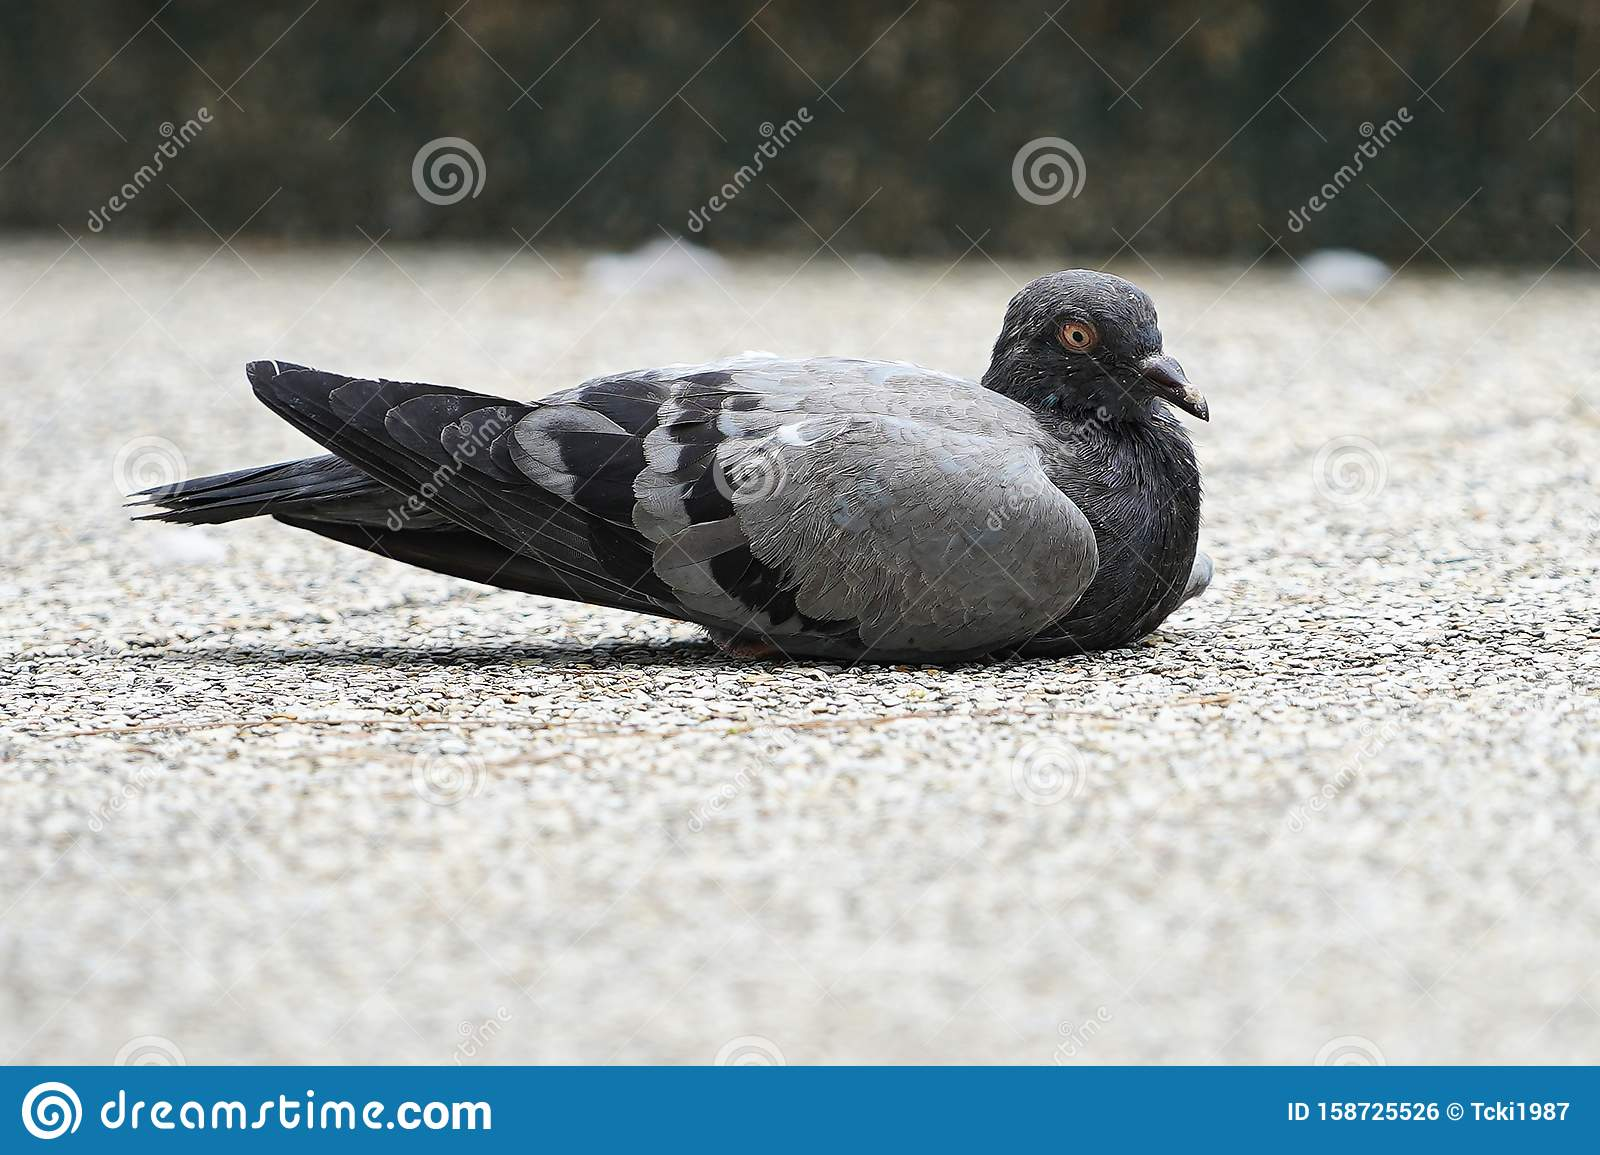 Dove Bird Close Up Zoom Sharp High Quality Stock Photo